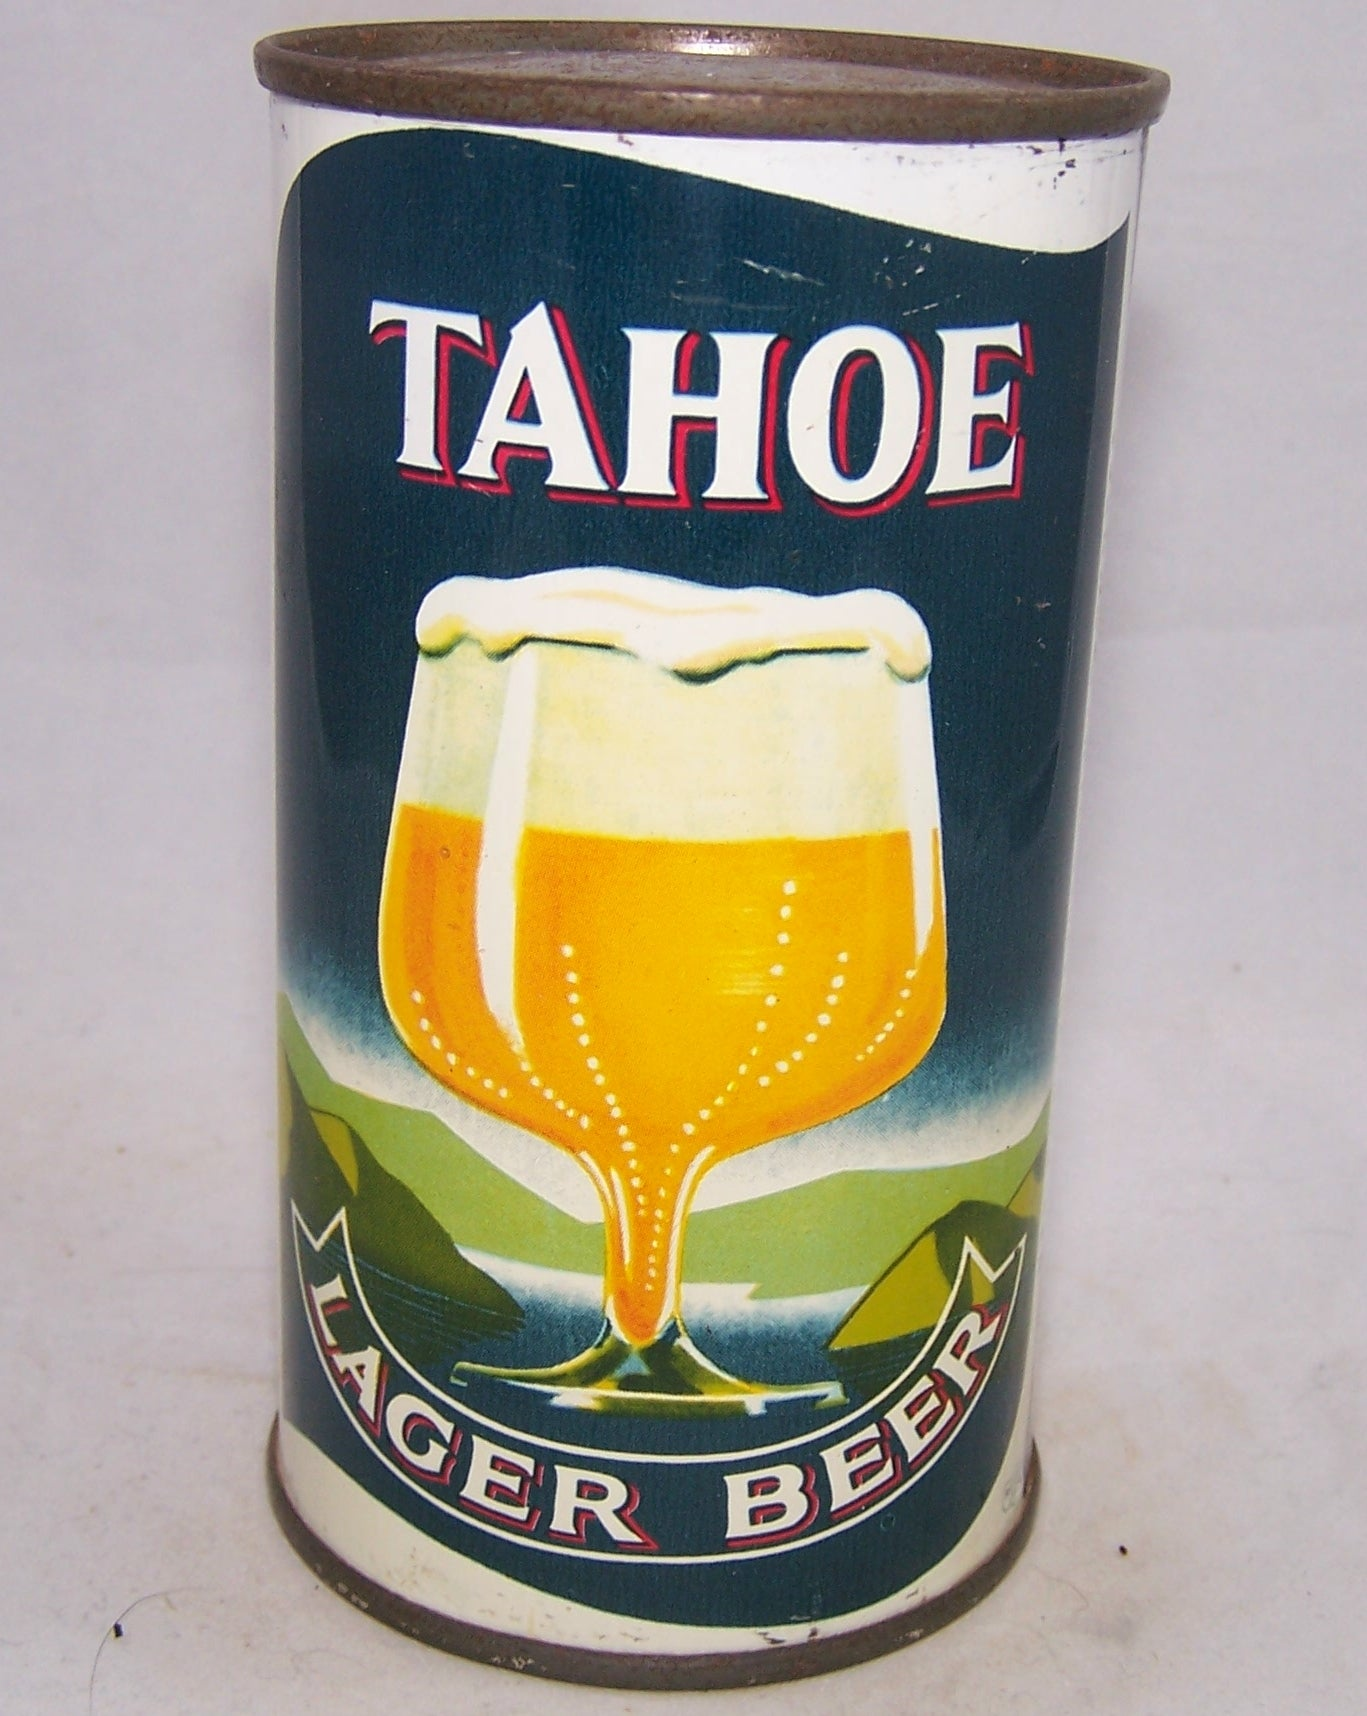 Tahoe Lager Beer, USBC 138-08, Grade 1/1+  Sold on 04/22/18